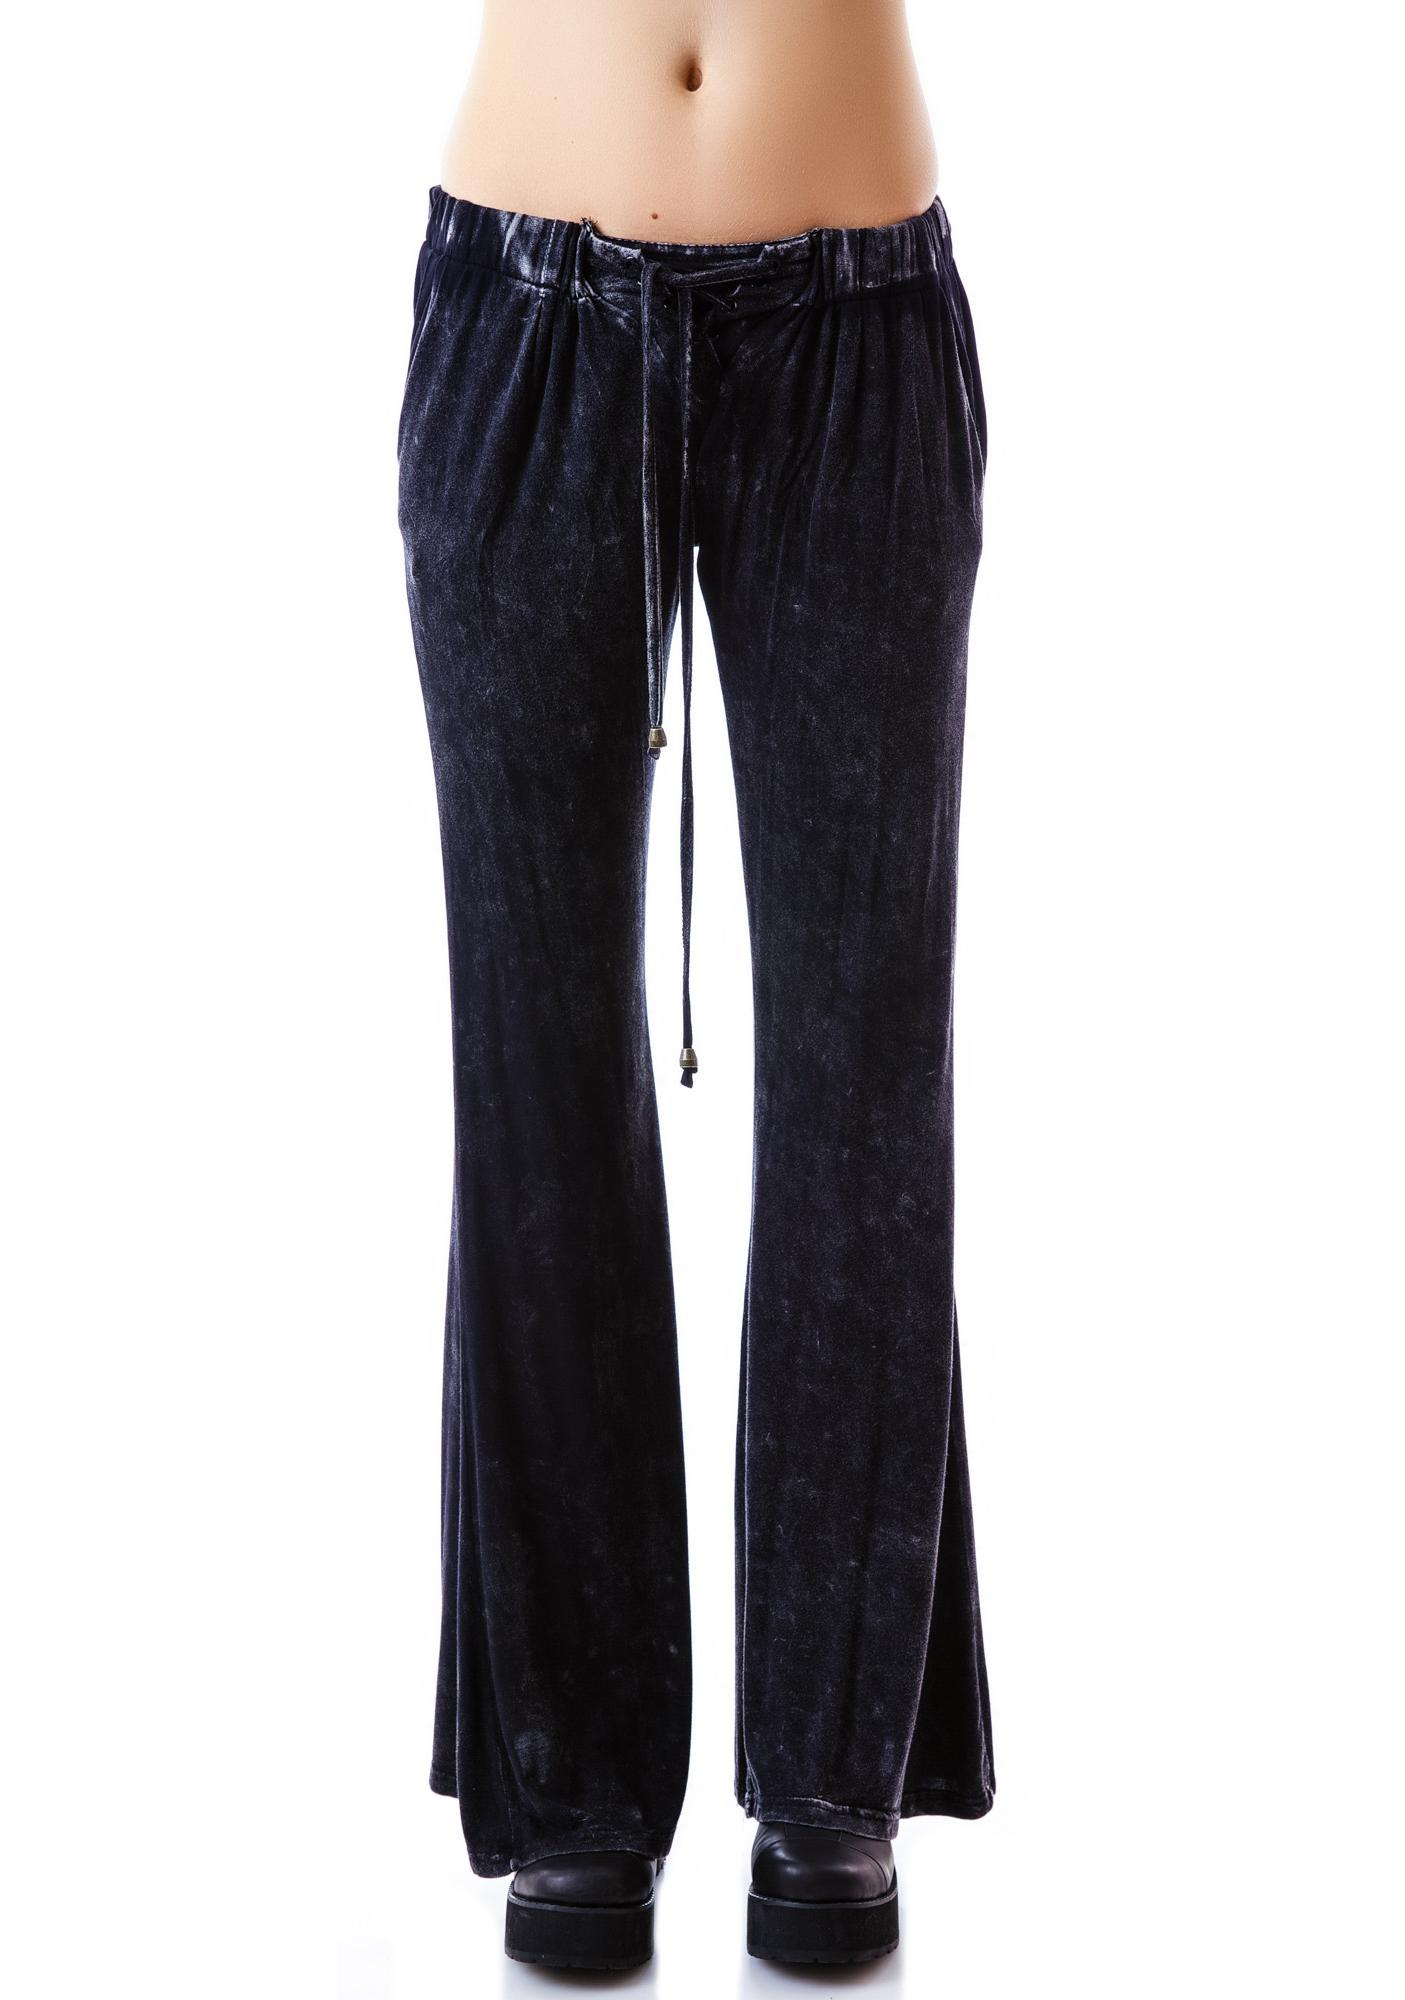 Lost Highway Corset Pants